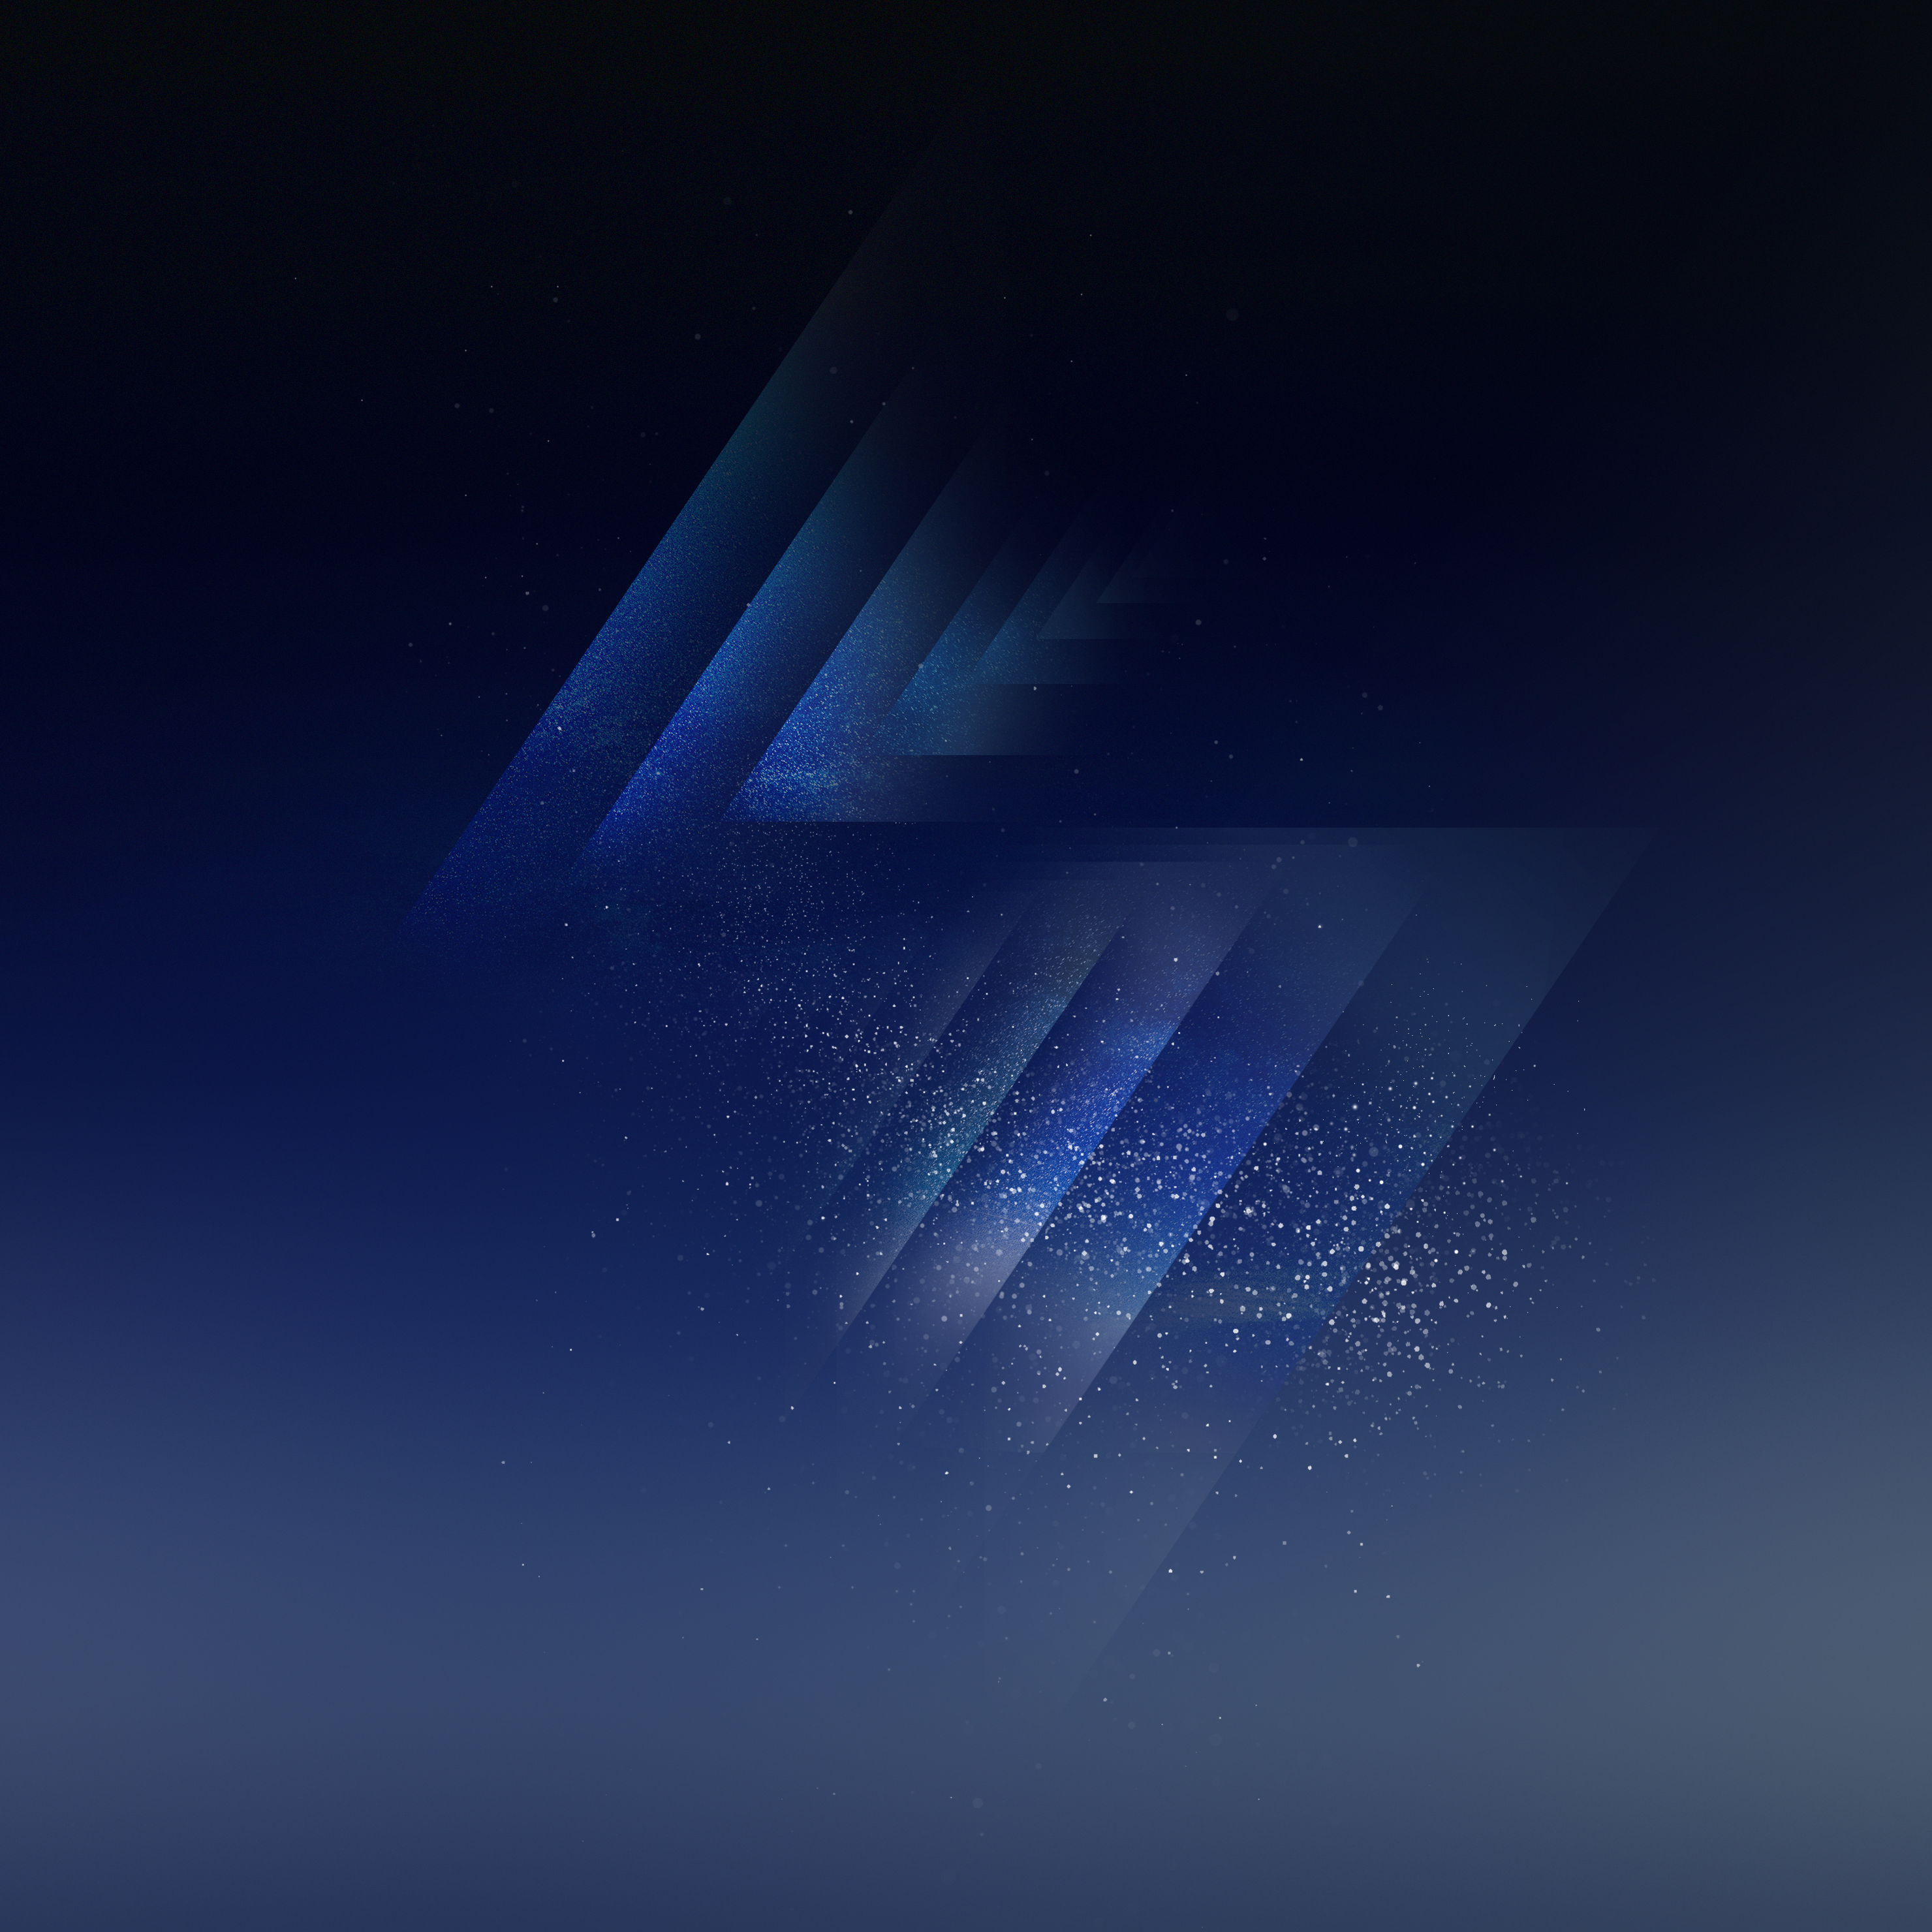 Samsung Galaxy S8 Infinity Wallpapers Top Free Samsung Galaxy S8 Infinity Backgrounds Wallpaperaccess